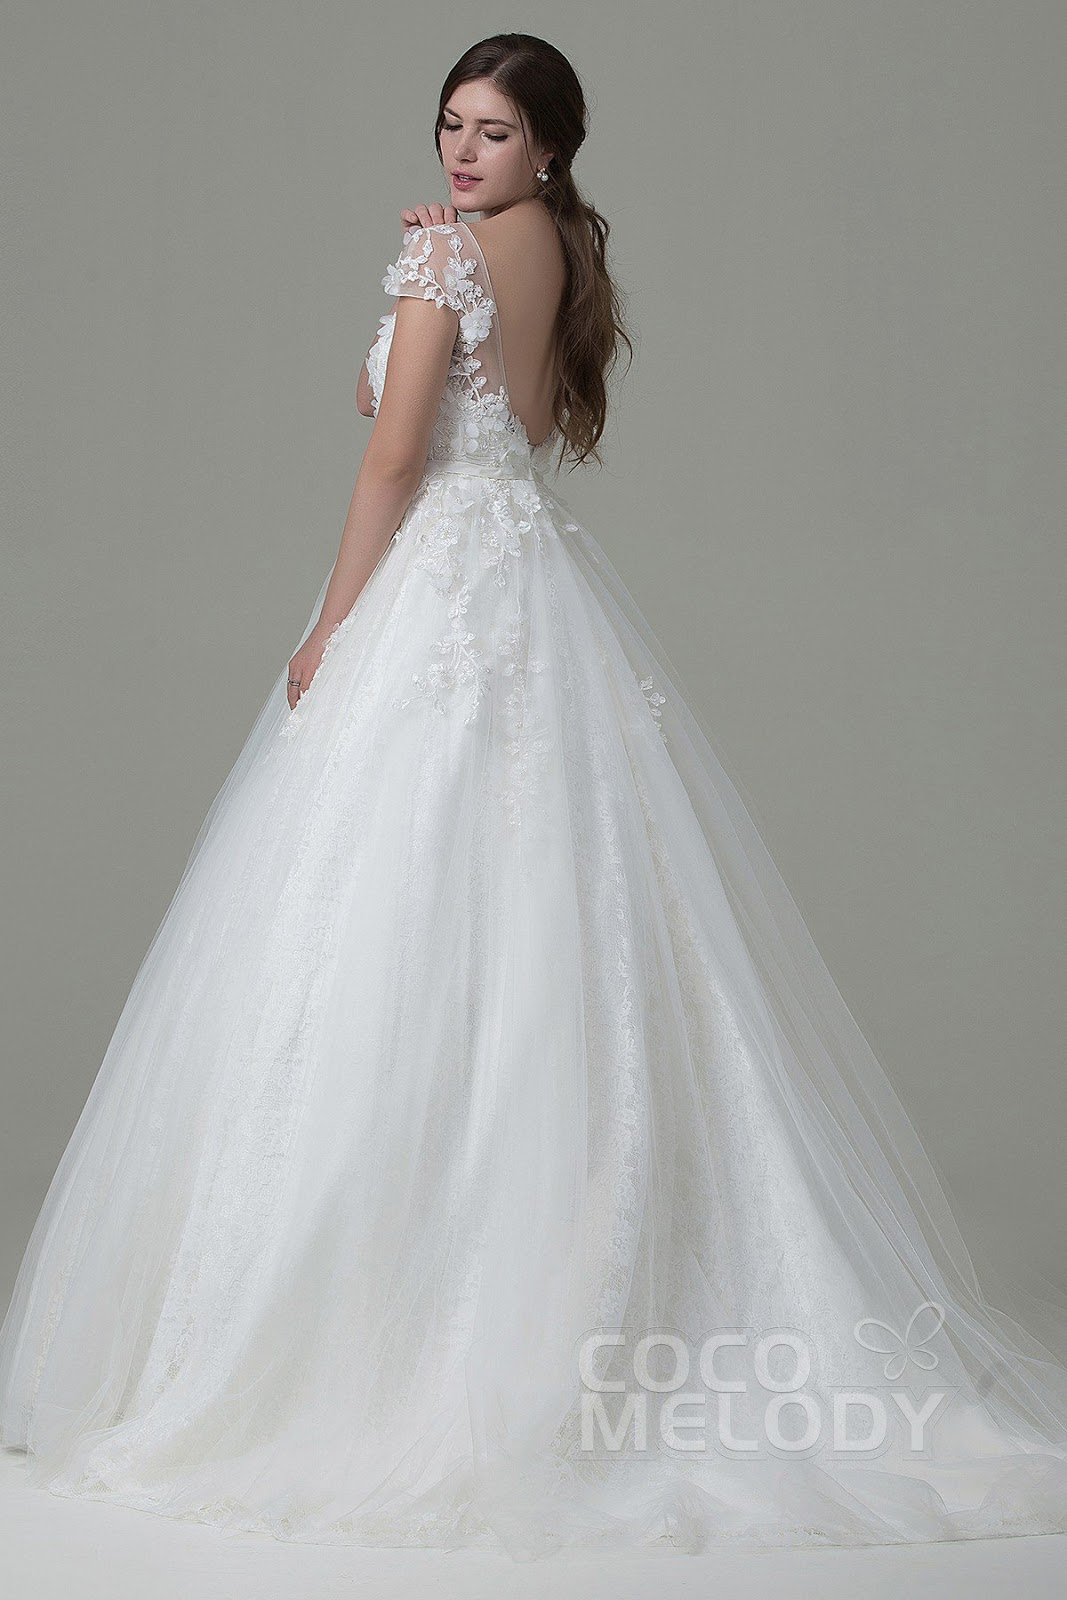 81b18d97aebc52 Below are some of my favorite wedding dresses at Cocomelody.